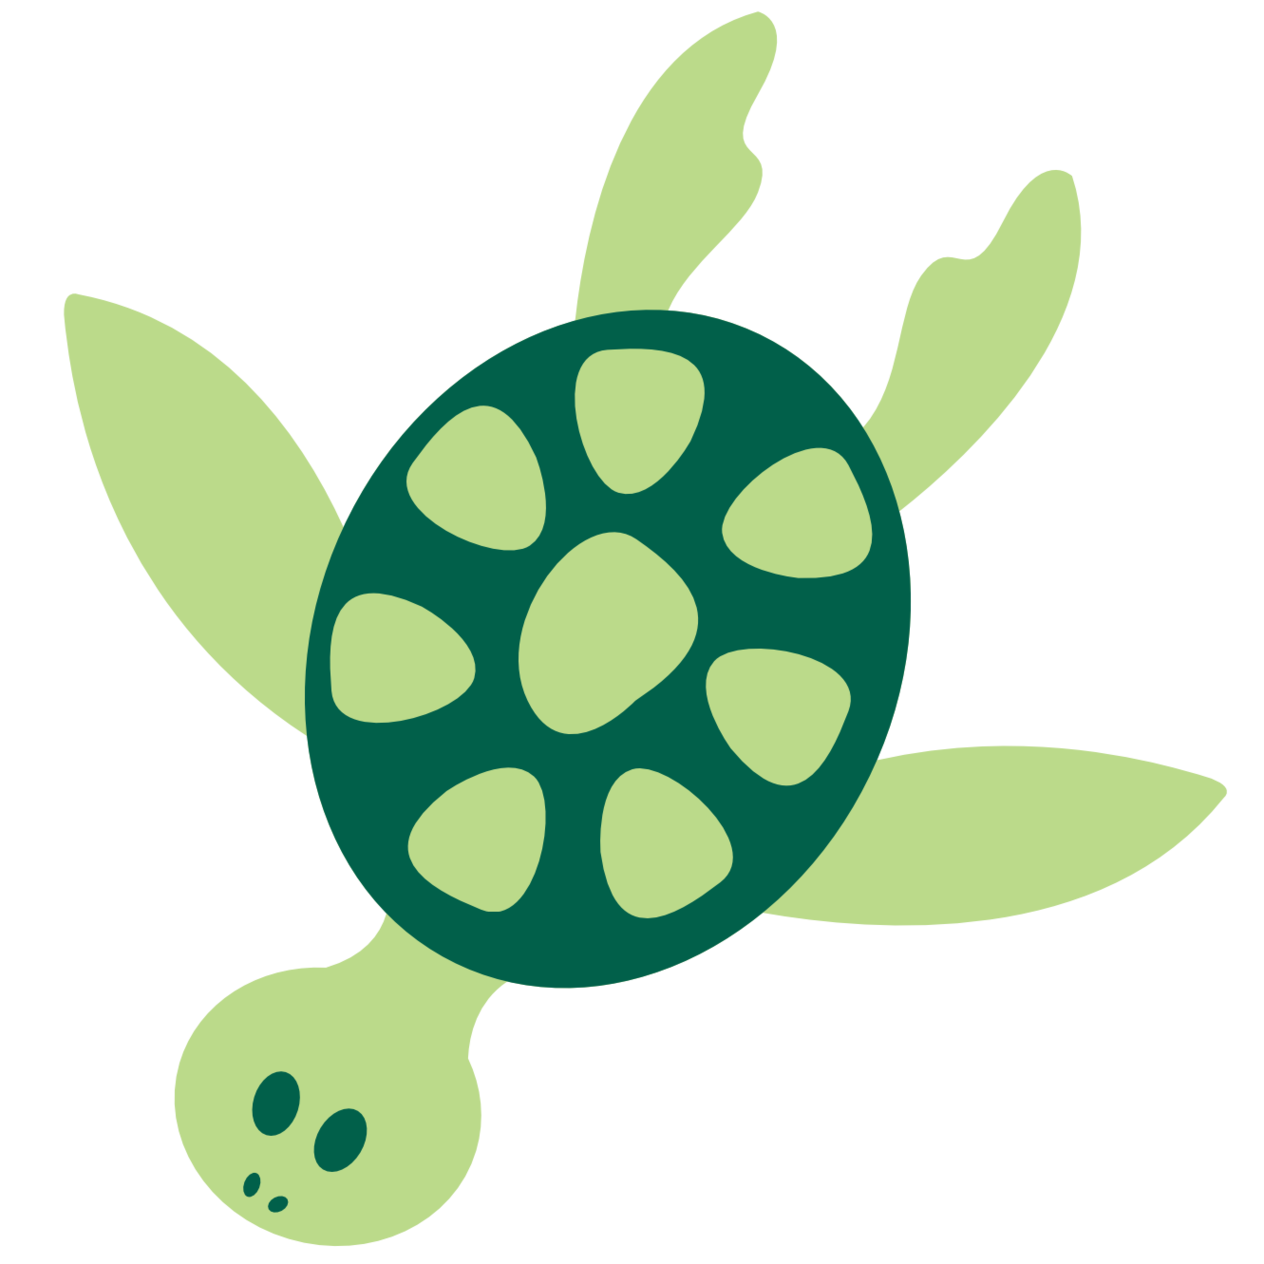 1264x1264 Cartoon Sea Turtle Clipart Free To Use Clip Art Resource Image